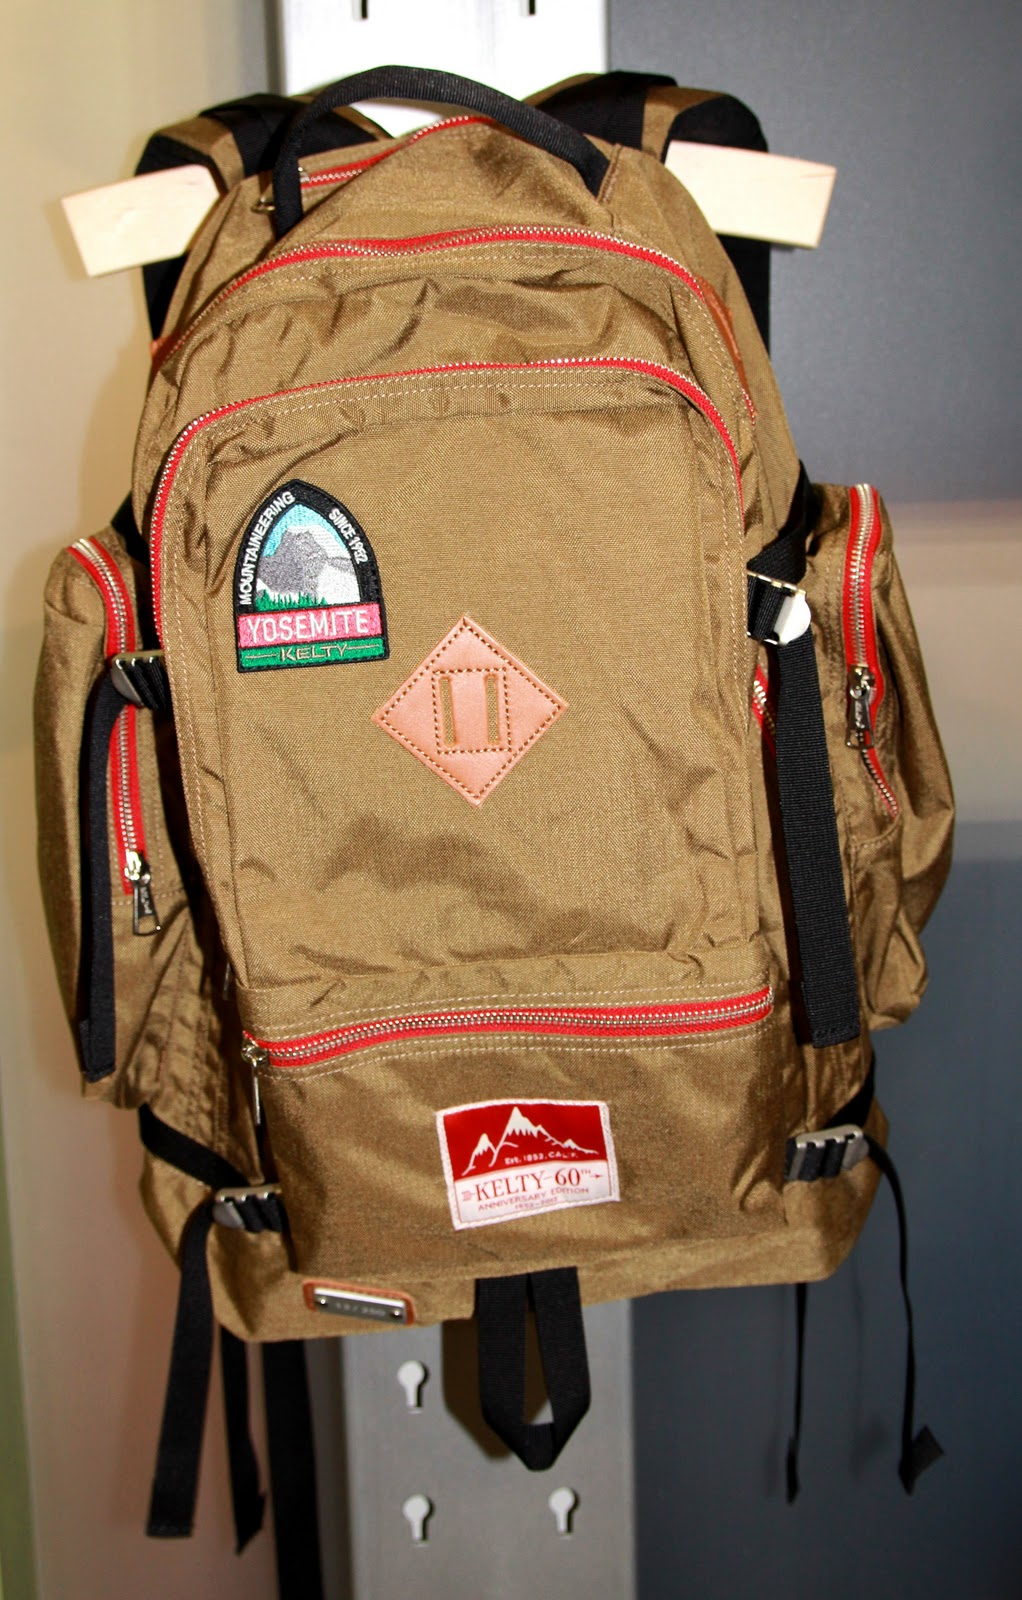 cae8ce1b68 60th Anniversary Backpack Limited Edition $150